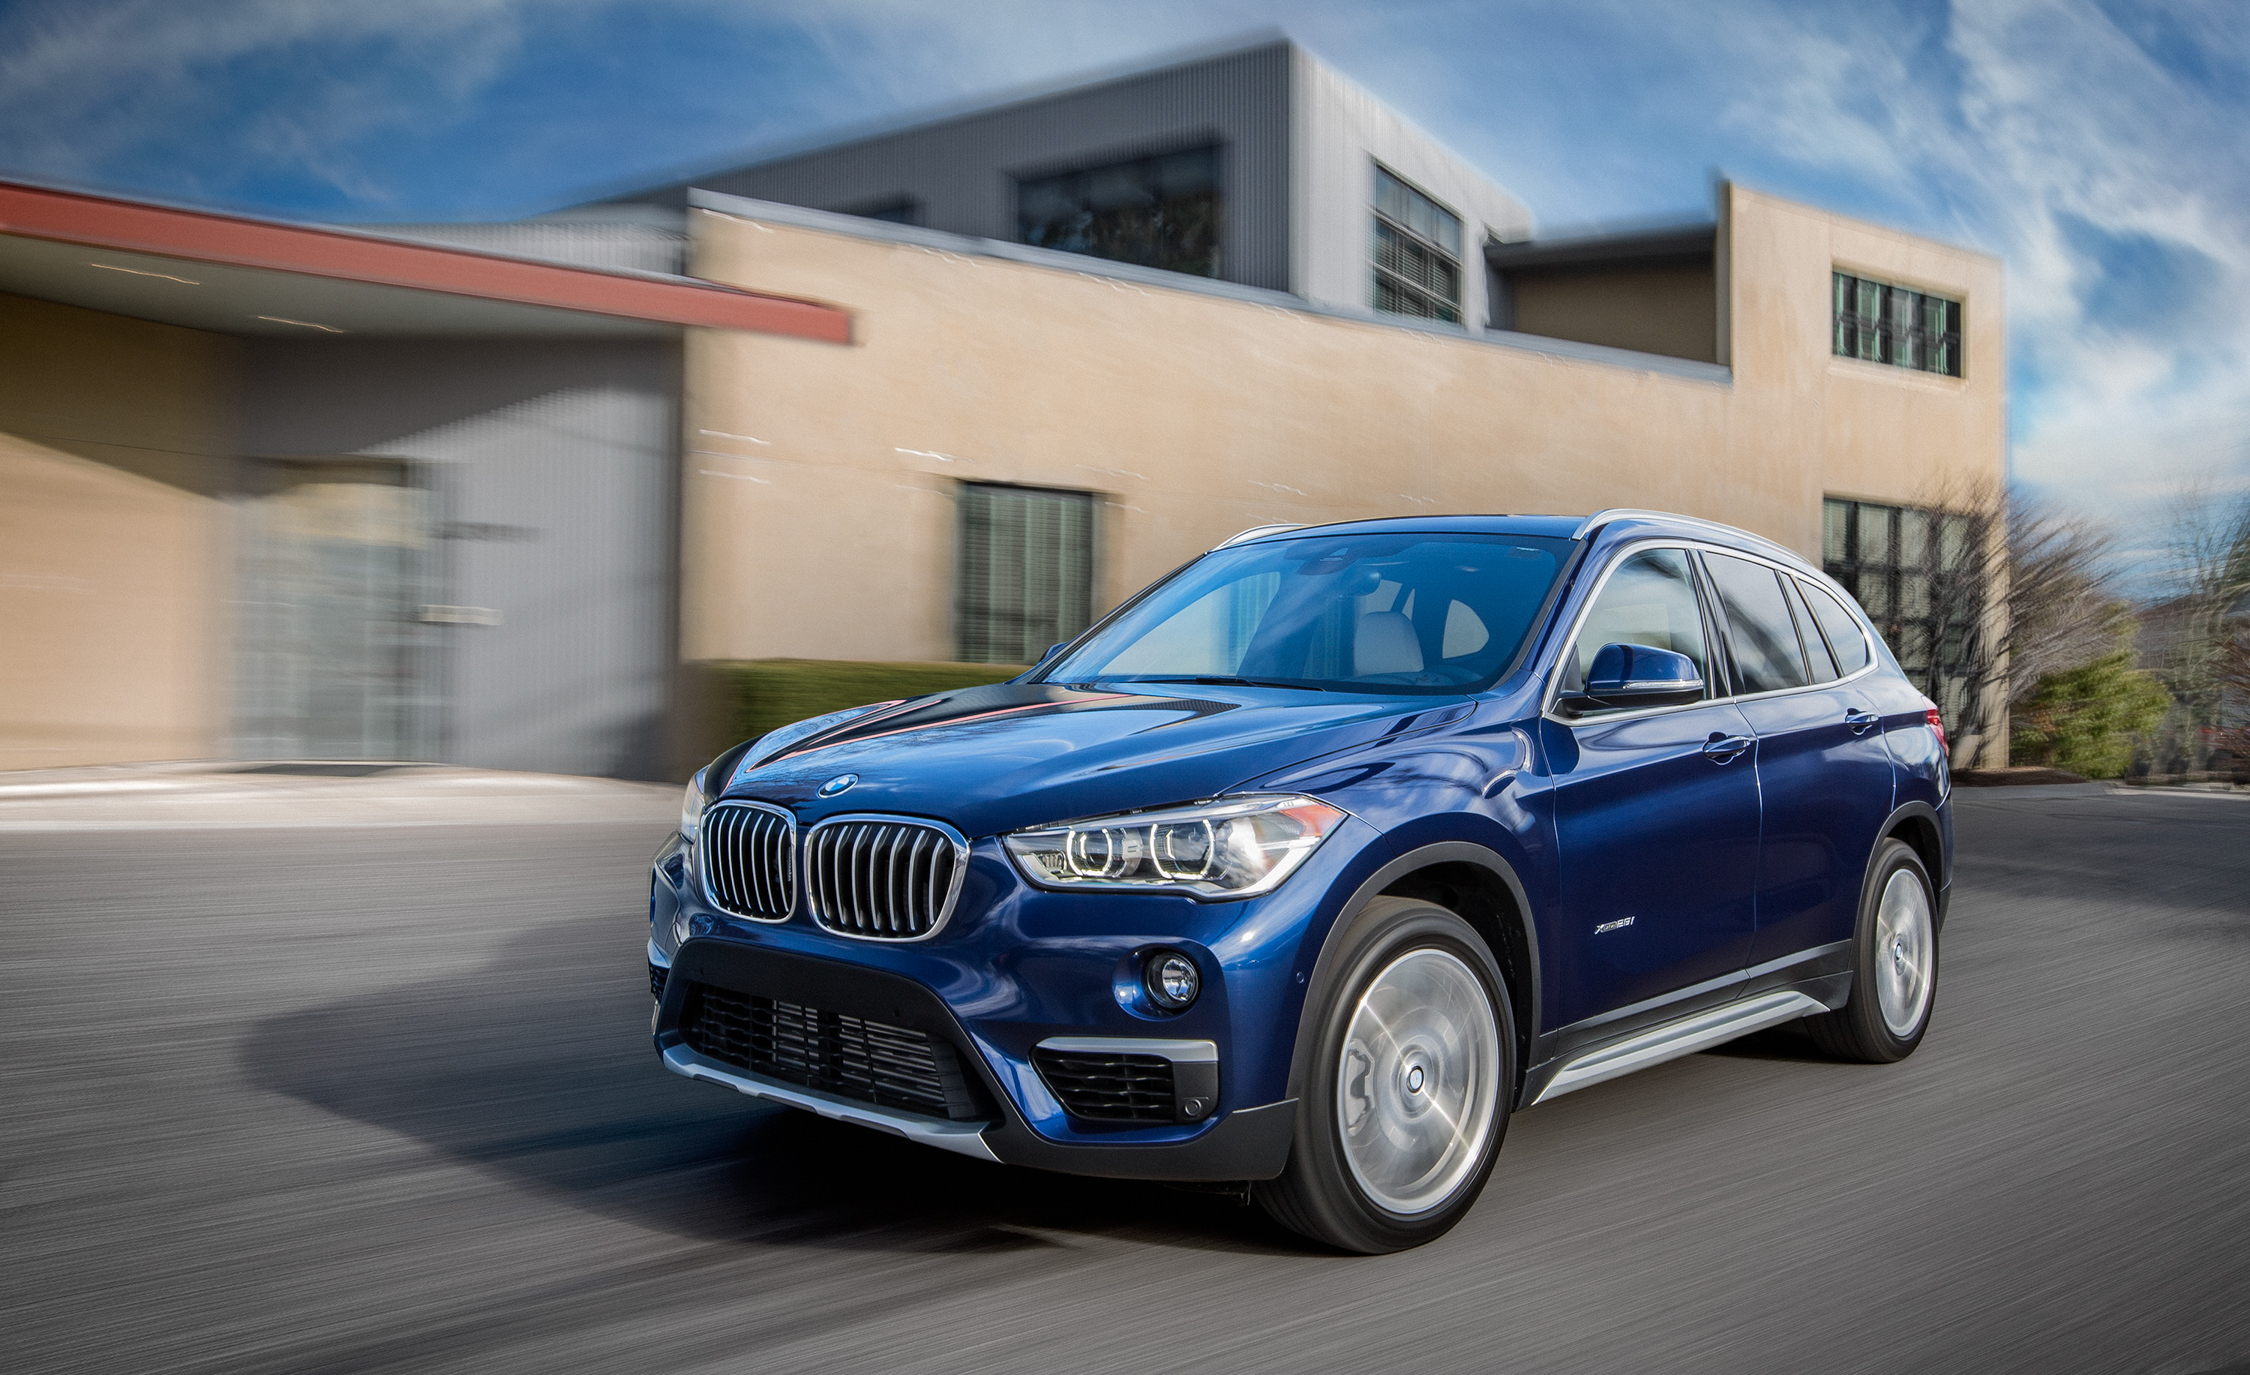 2016 BMW X1 XDrive28i Blue Metallic (Photo 1 of 36)